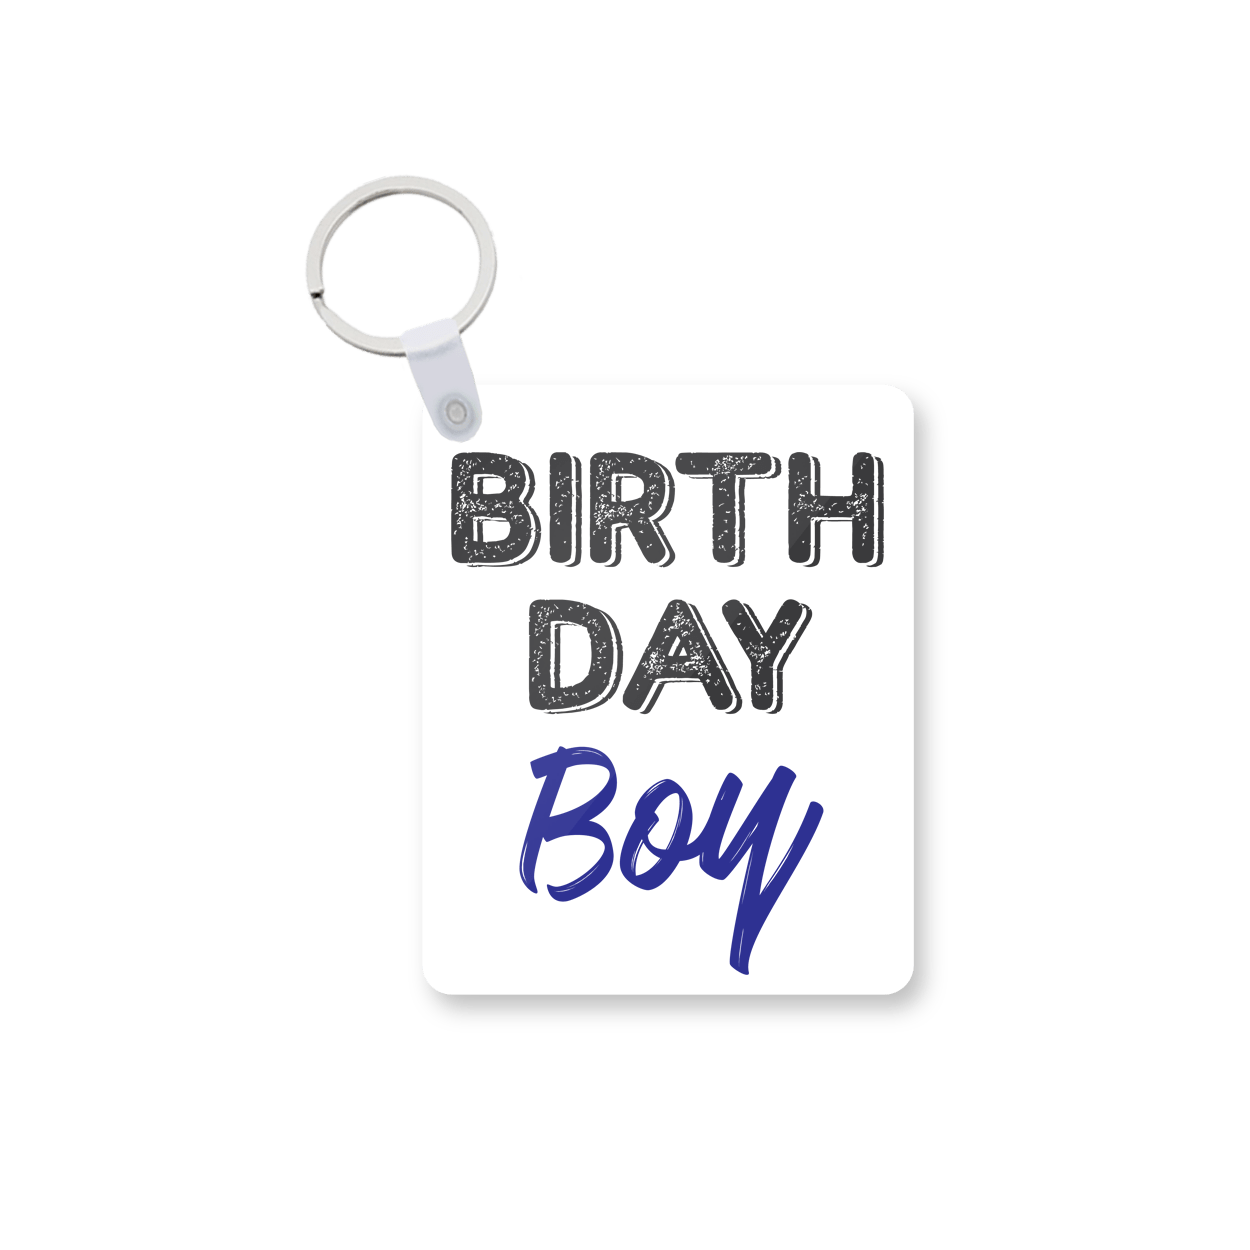 Birthday Boy Printed Keychain kc-537 price in Pakistan at